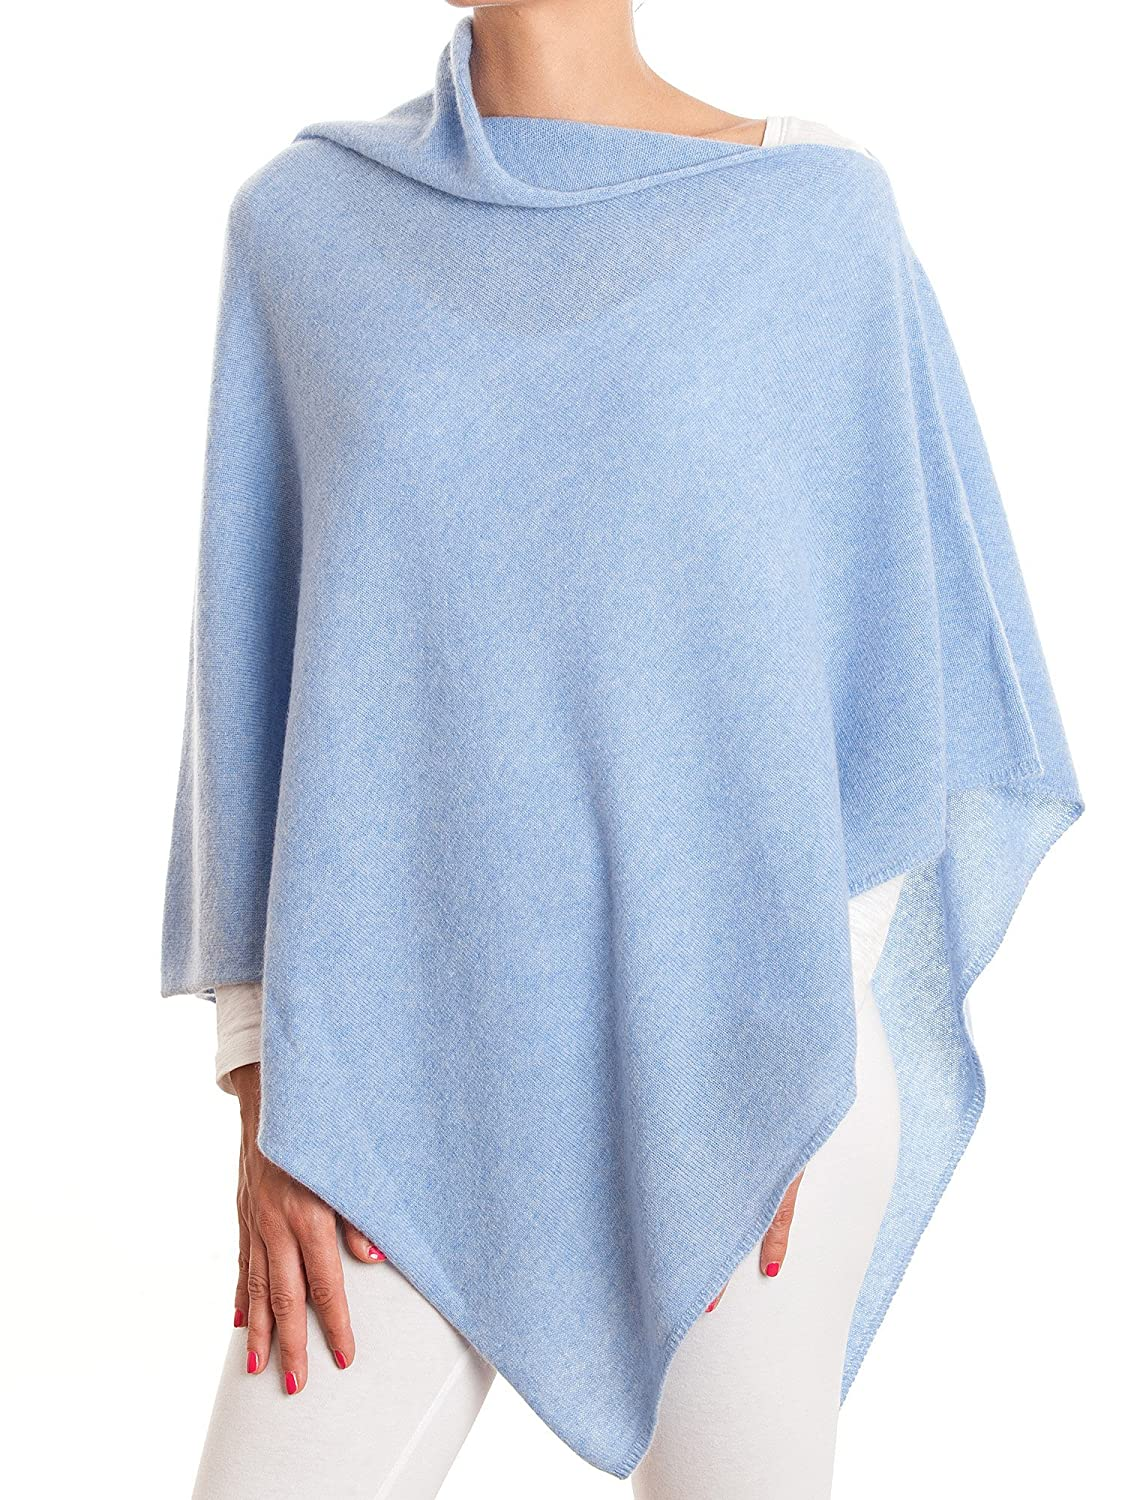 DALLE PIANE CASHMERE Poncho 100% Cashmere - Woman Color: Anthracite One Size Ver070_ANTU